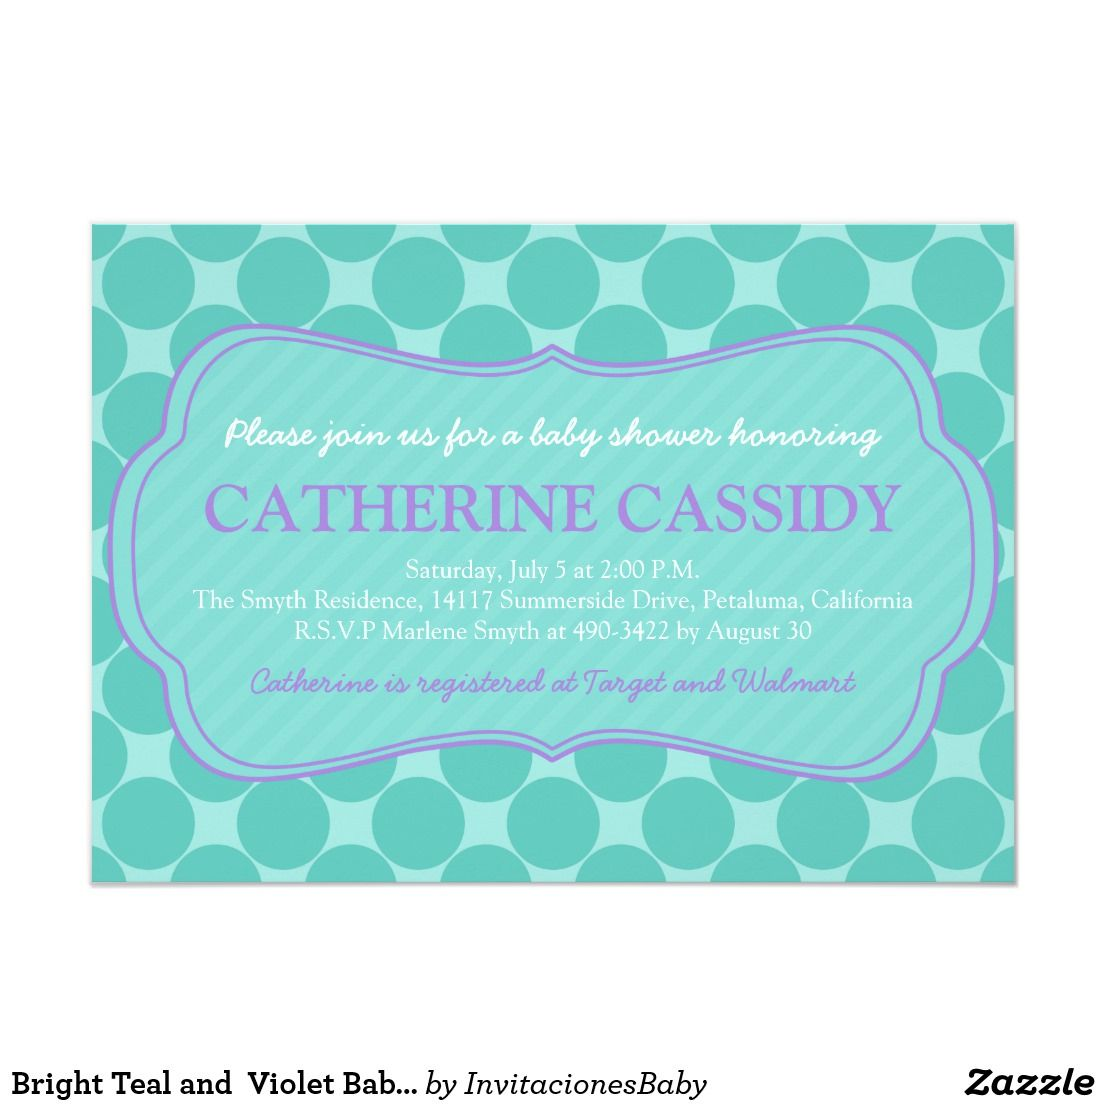 Bright teal and violet baby shower invitation bright teal